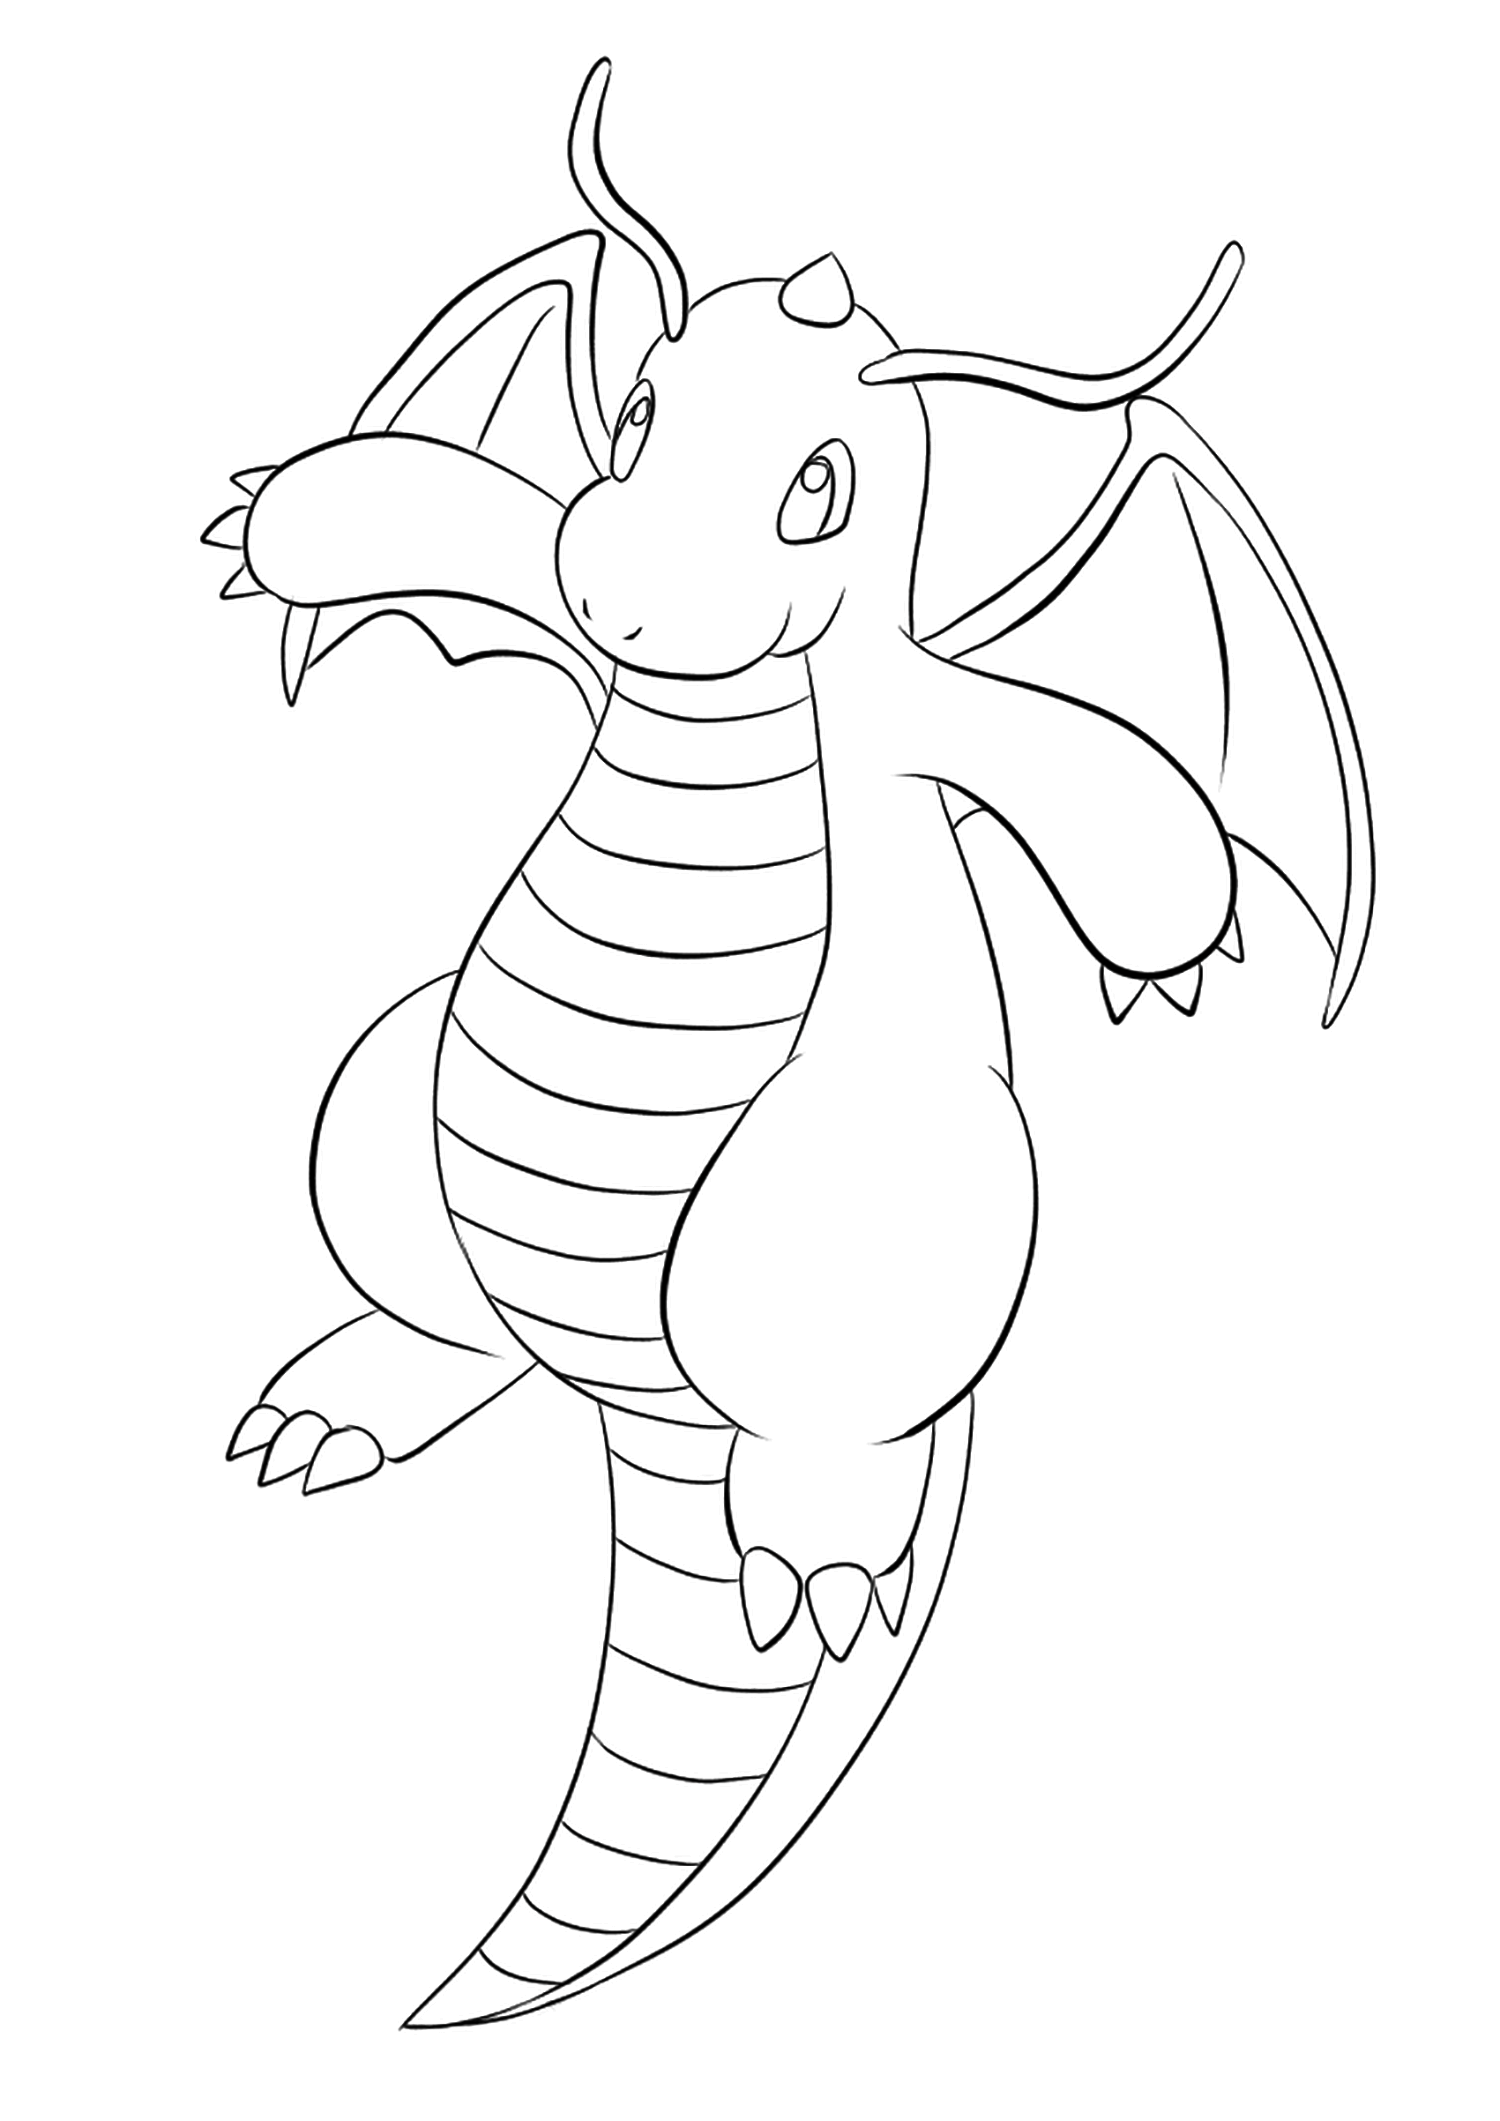 pokemon coloring pages dragonite dragonite coloring sheet on paintnet the expert pages coloring pokemon dragonite